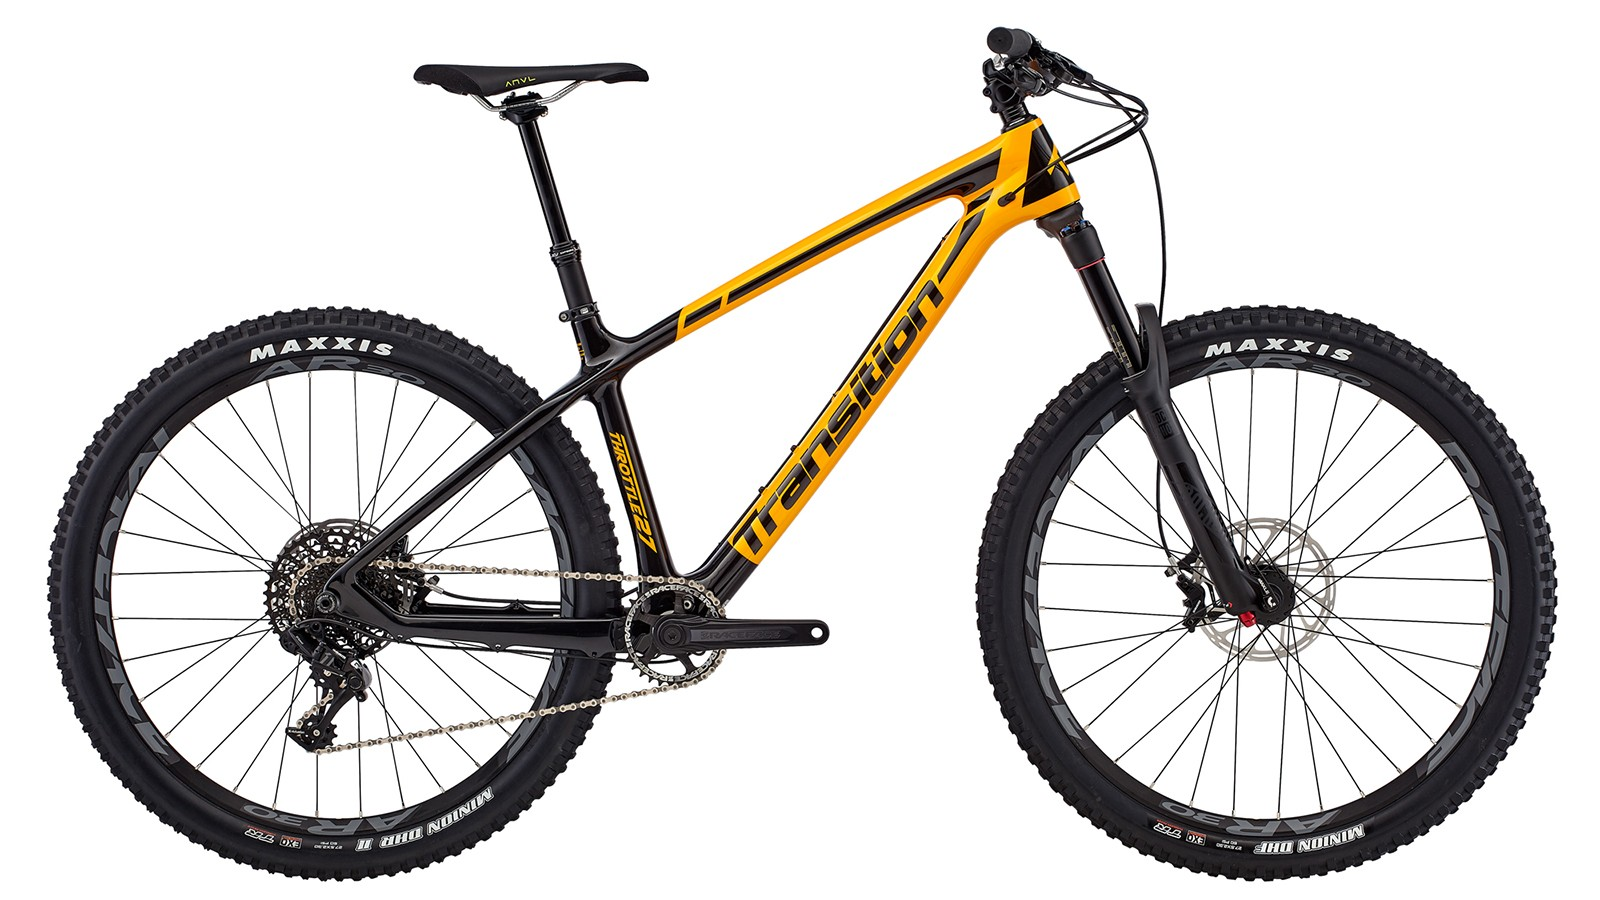 The Transition Throttle 27.5